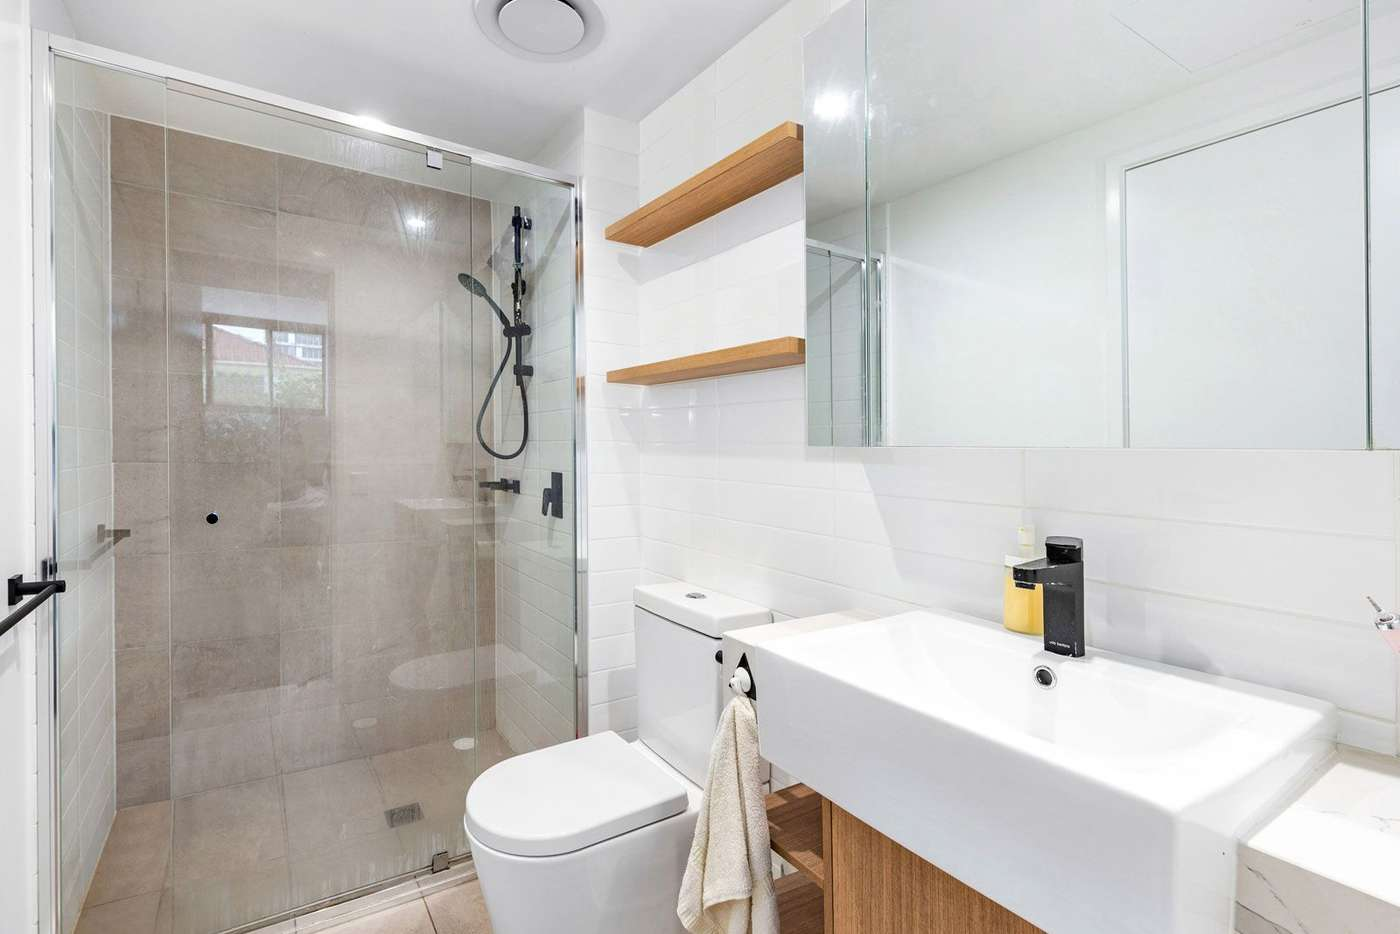 Fifth view of Homely apartment listing, 108/24 Augustus Street, Toowong QLD 4066